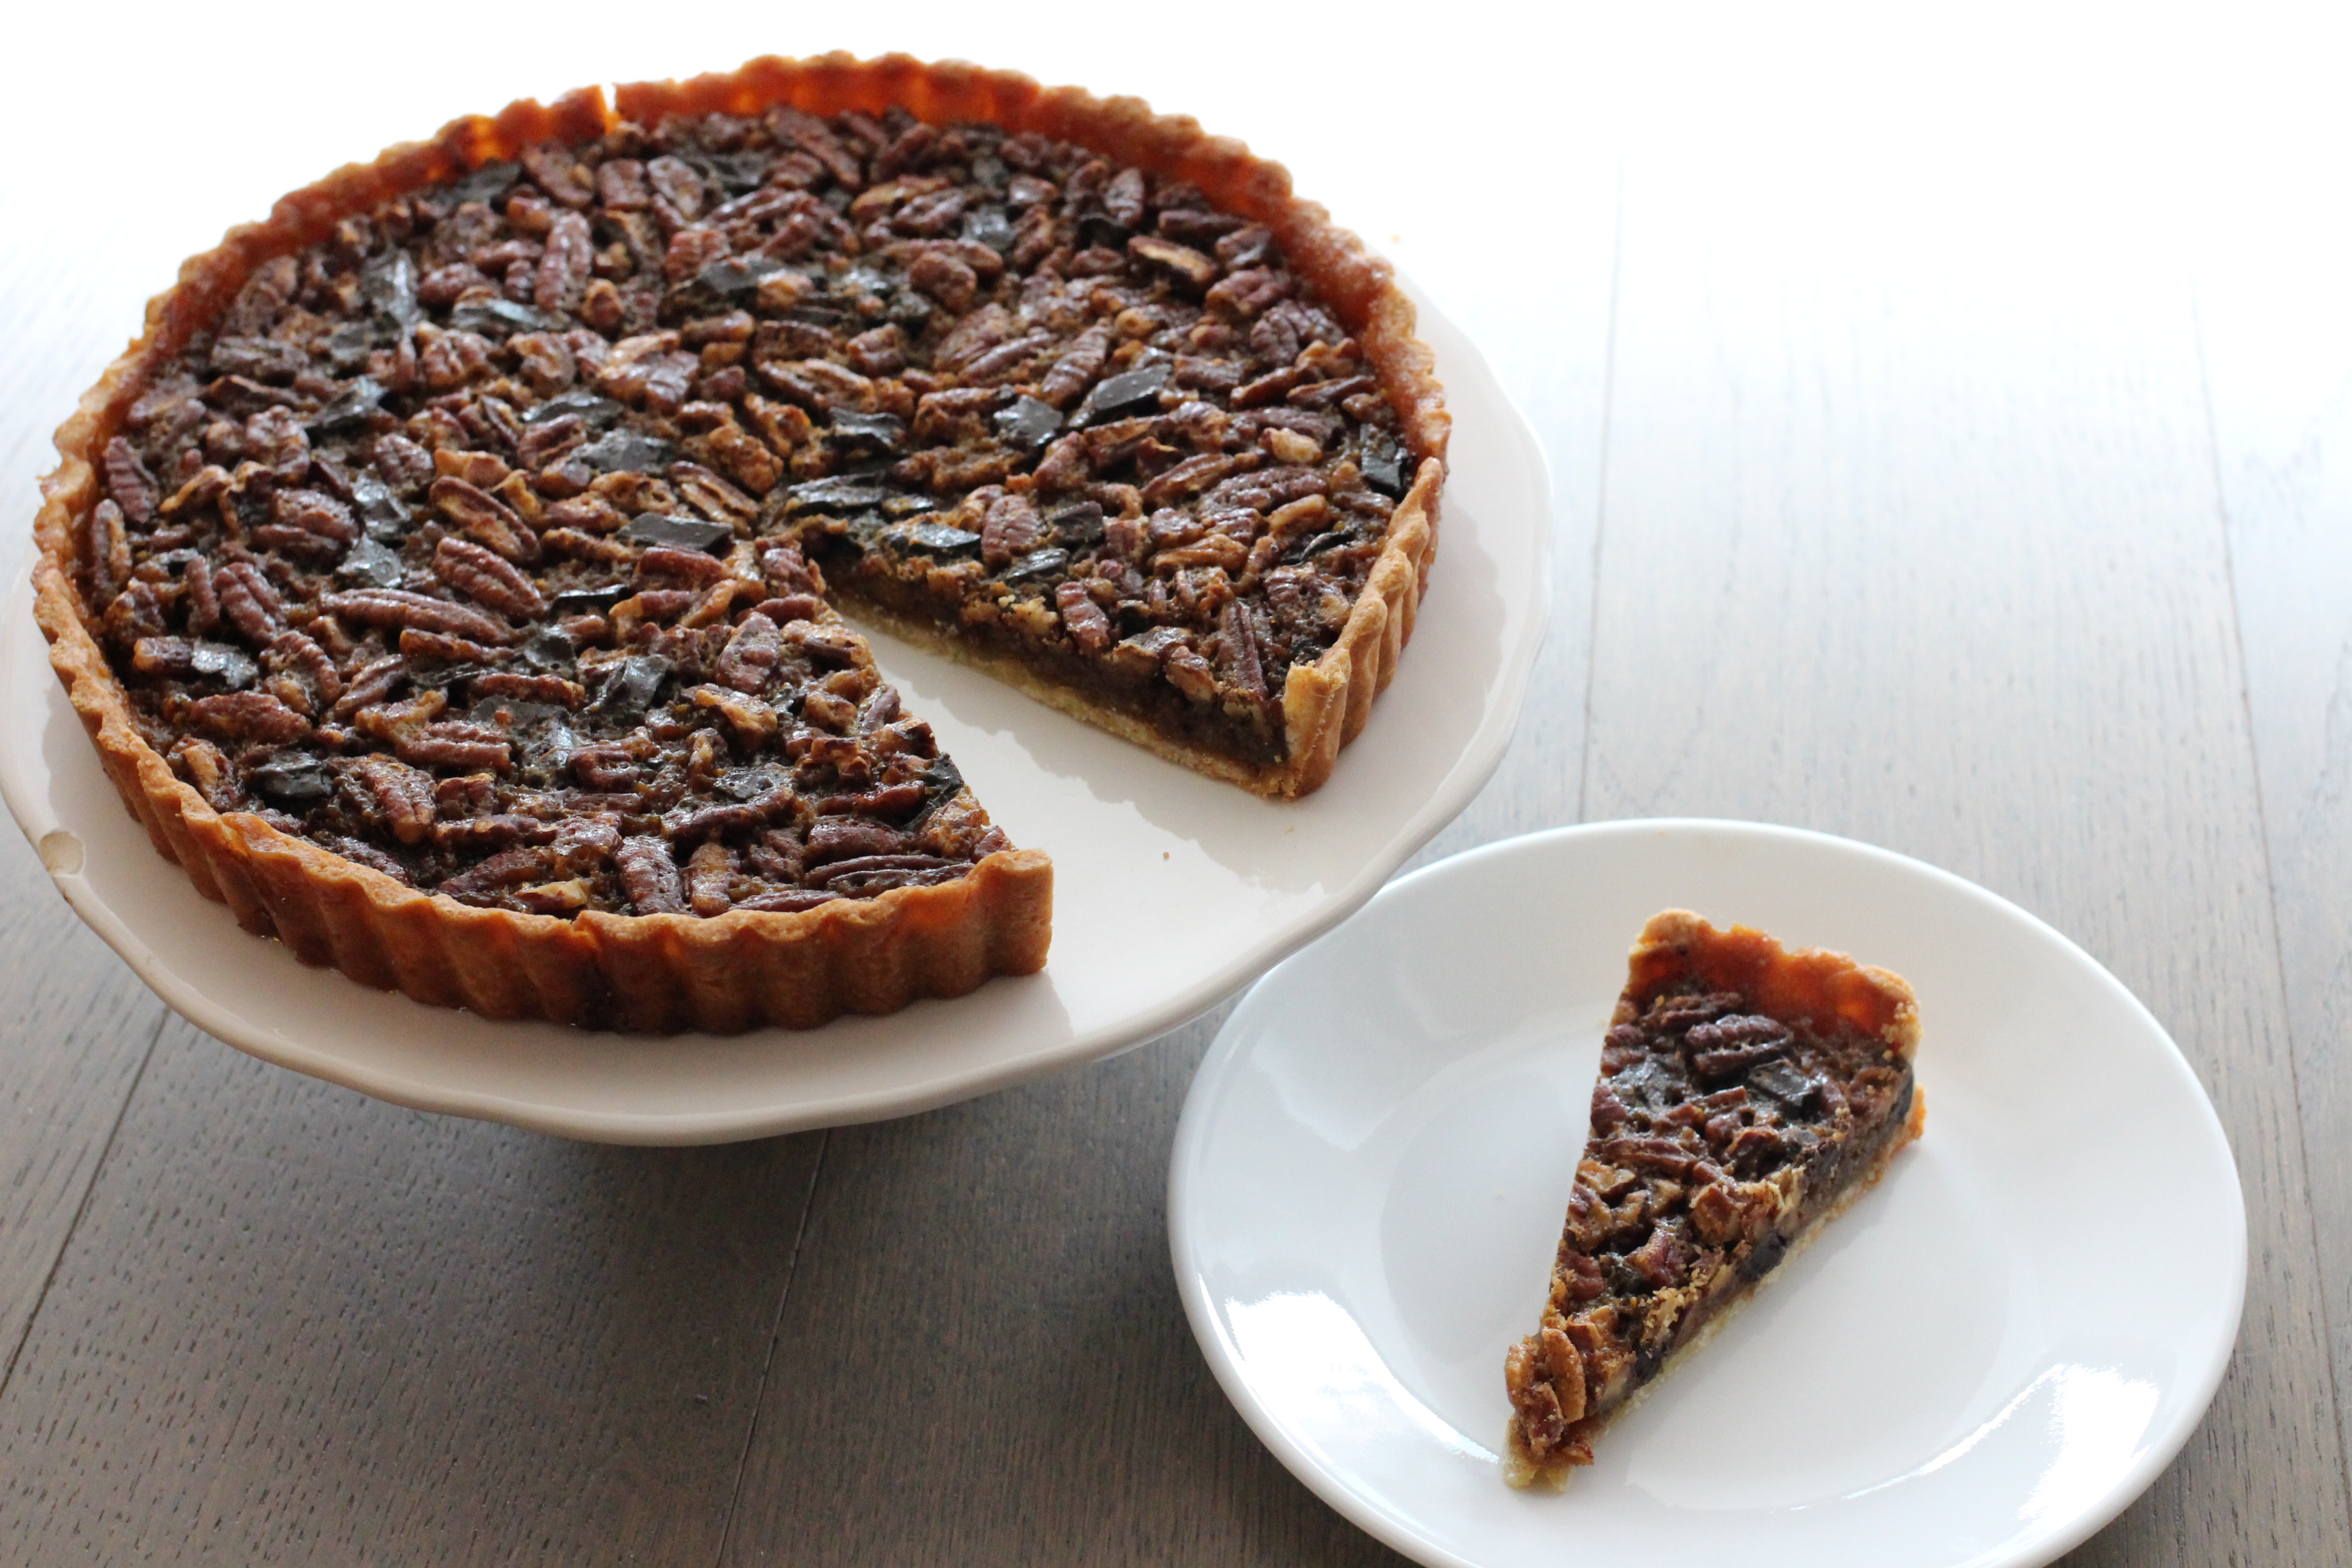 Chocolate Bourbon Pecan Tart | penny for her thoughts